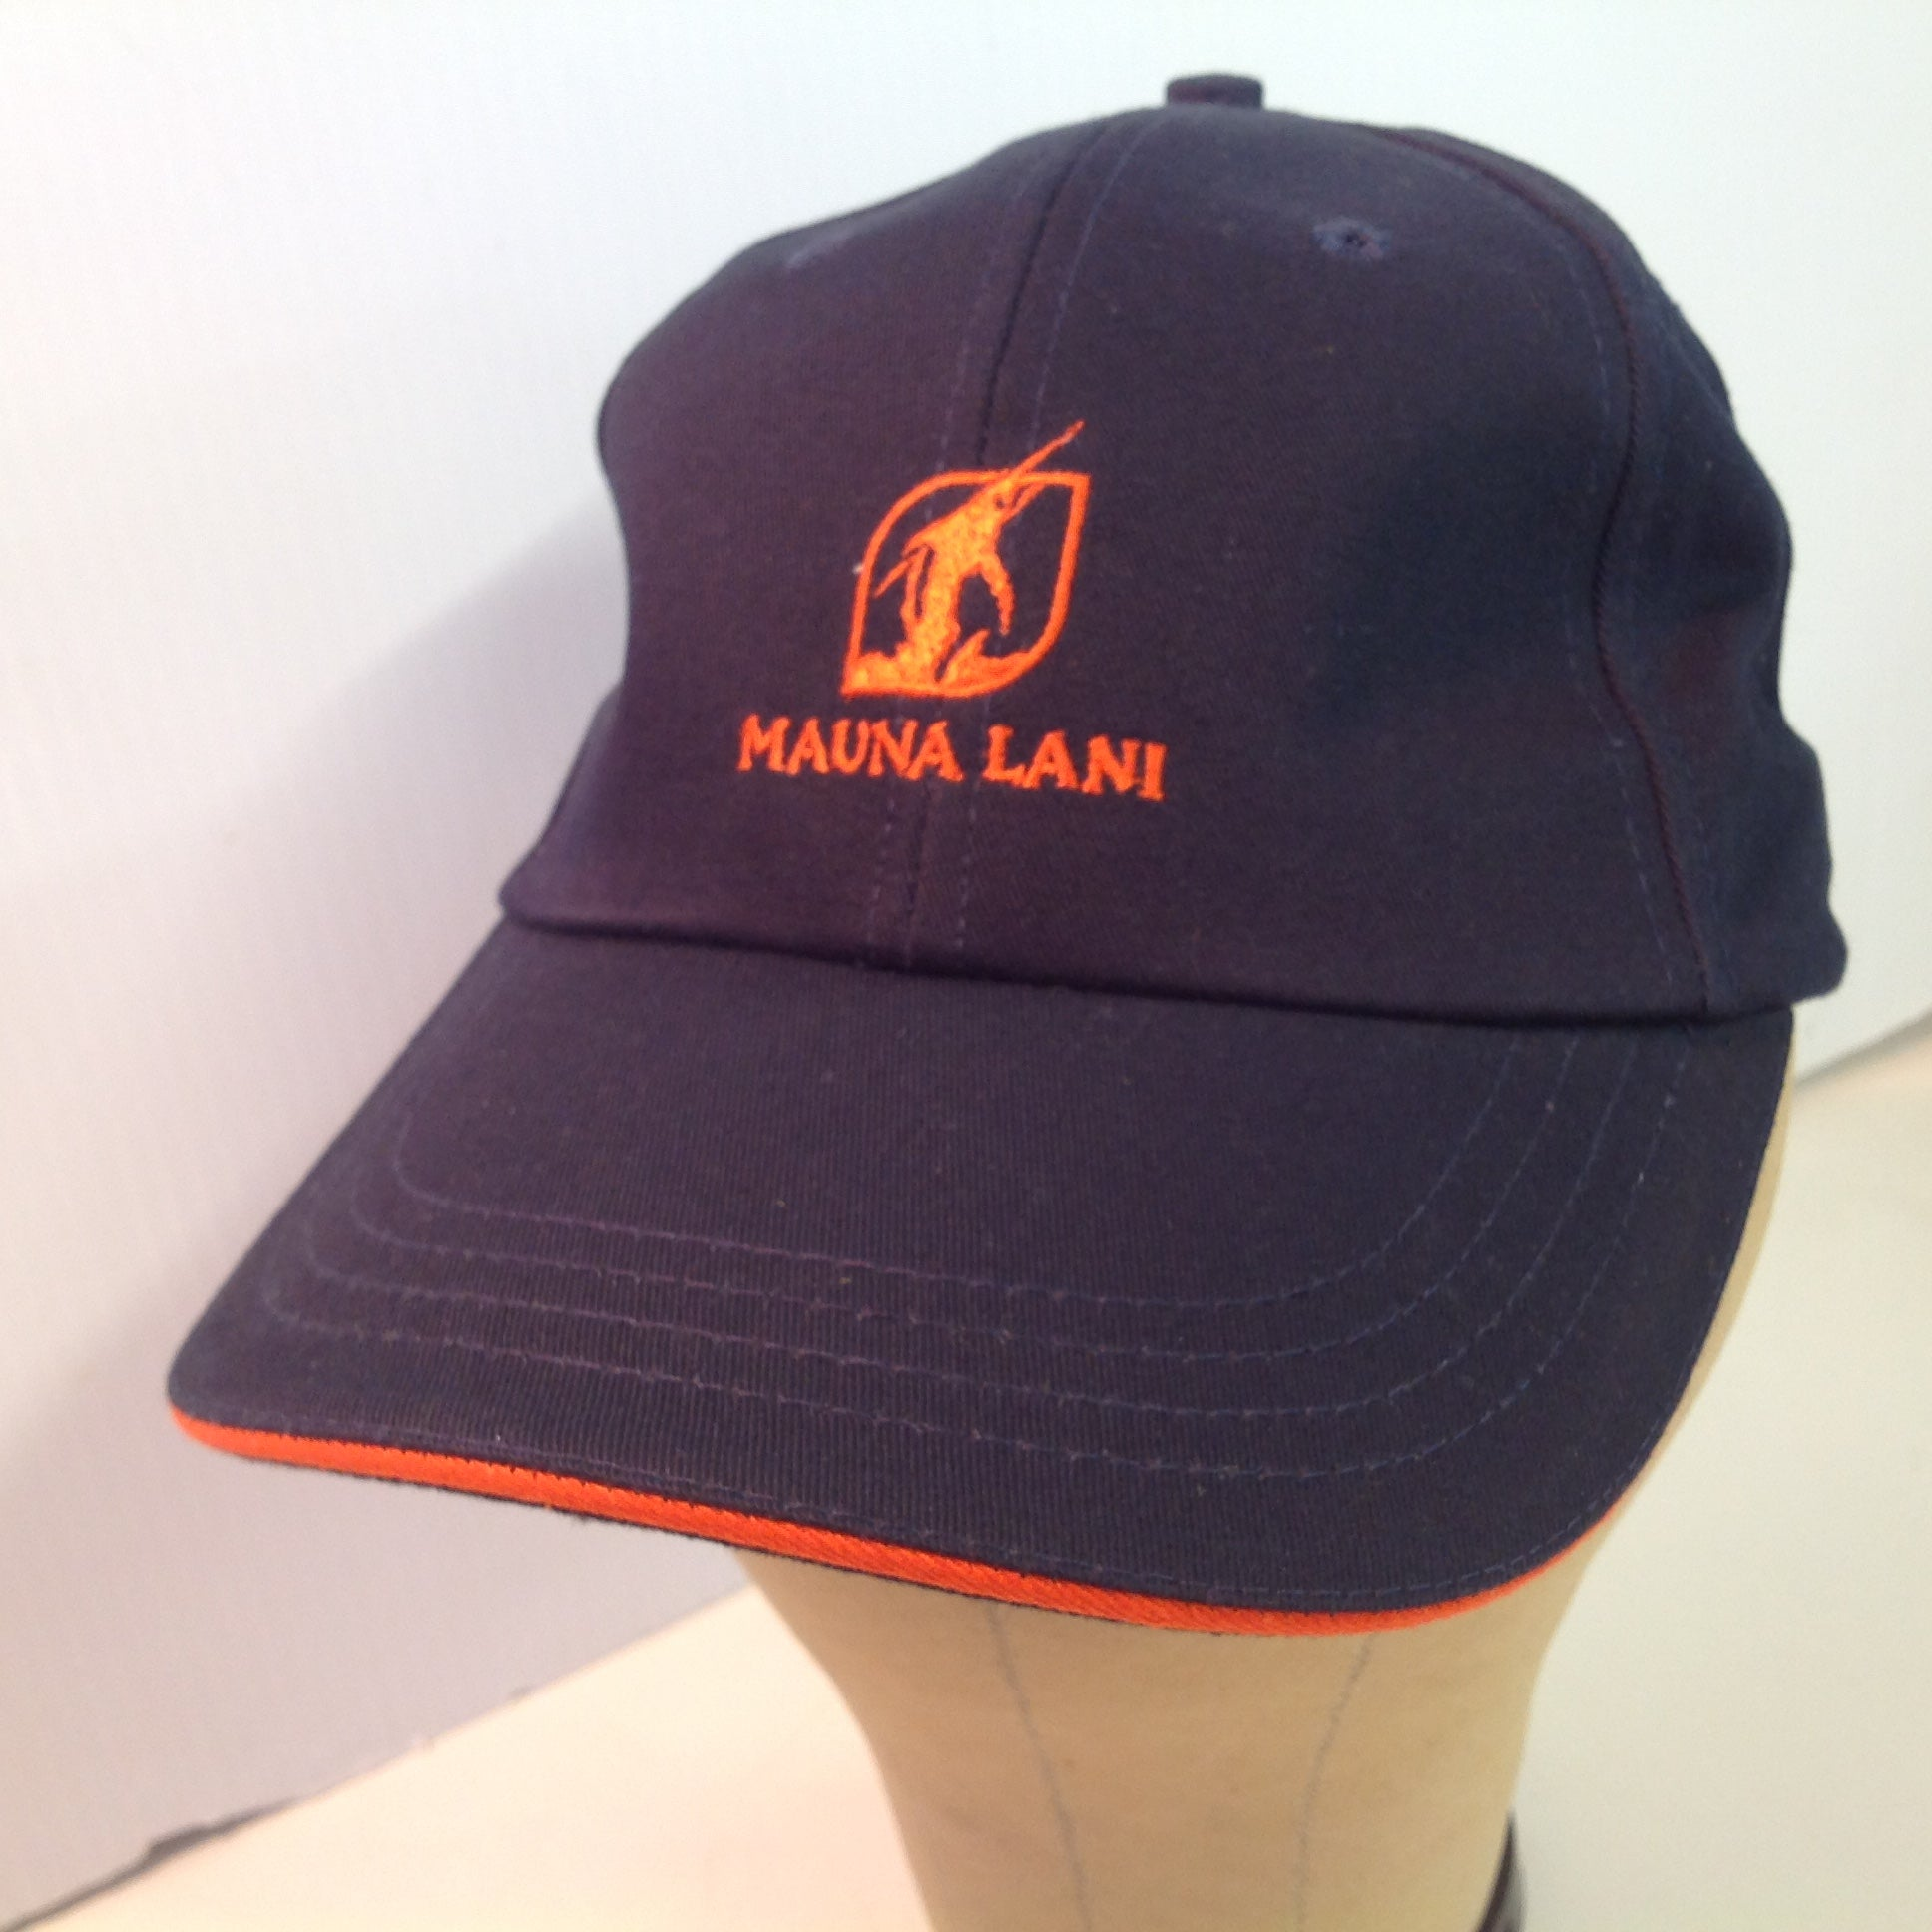 Vintage Texace Pro 98 Black with Orange Piping Mauna Lani Golf Course Hawaii Souvenir Floral Baseball Cap